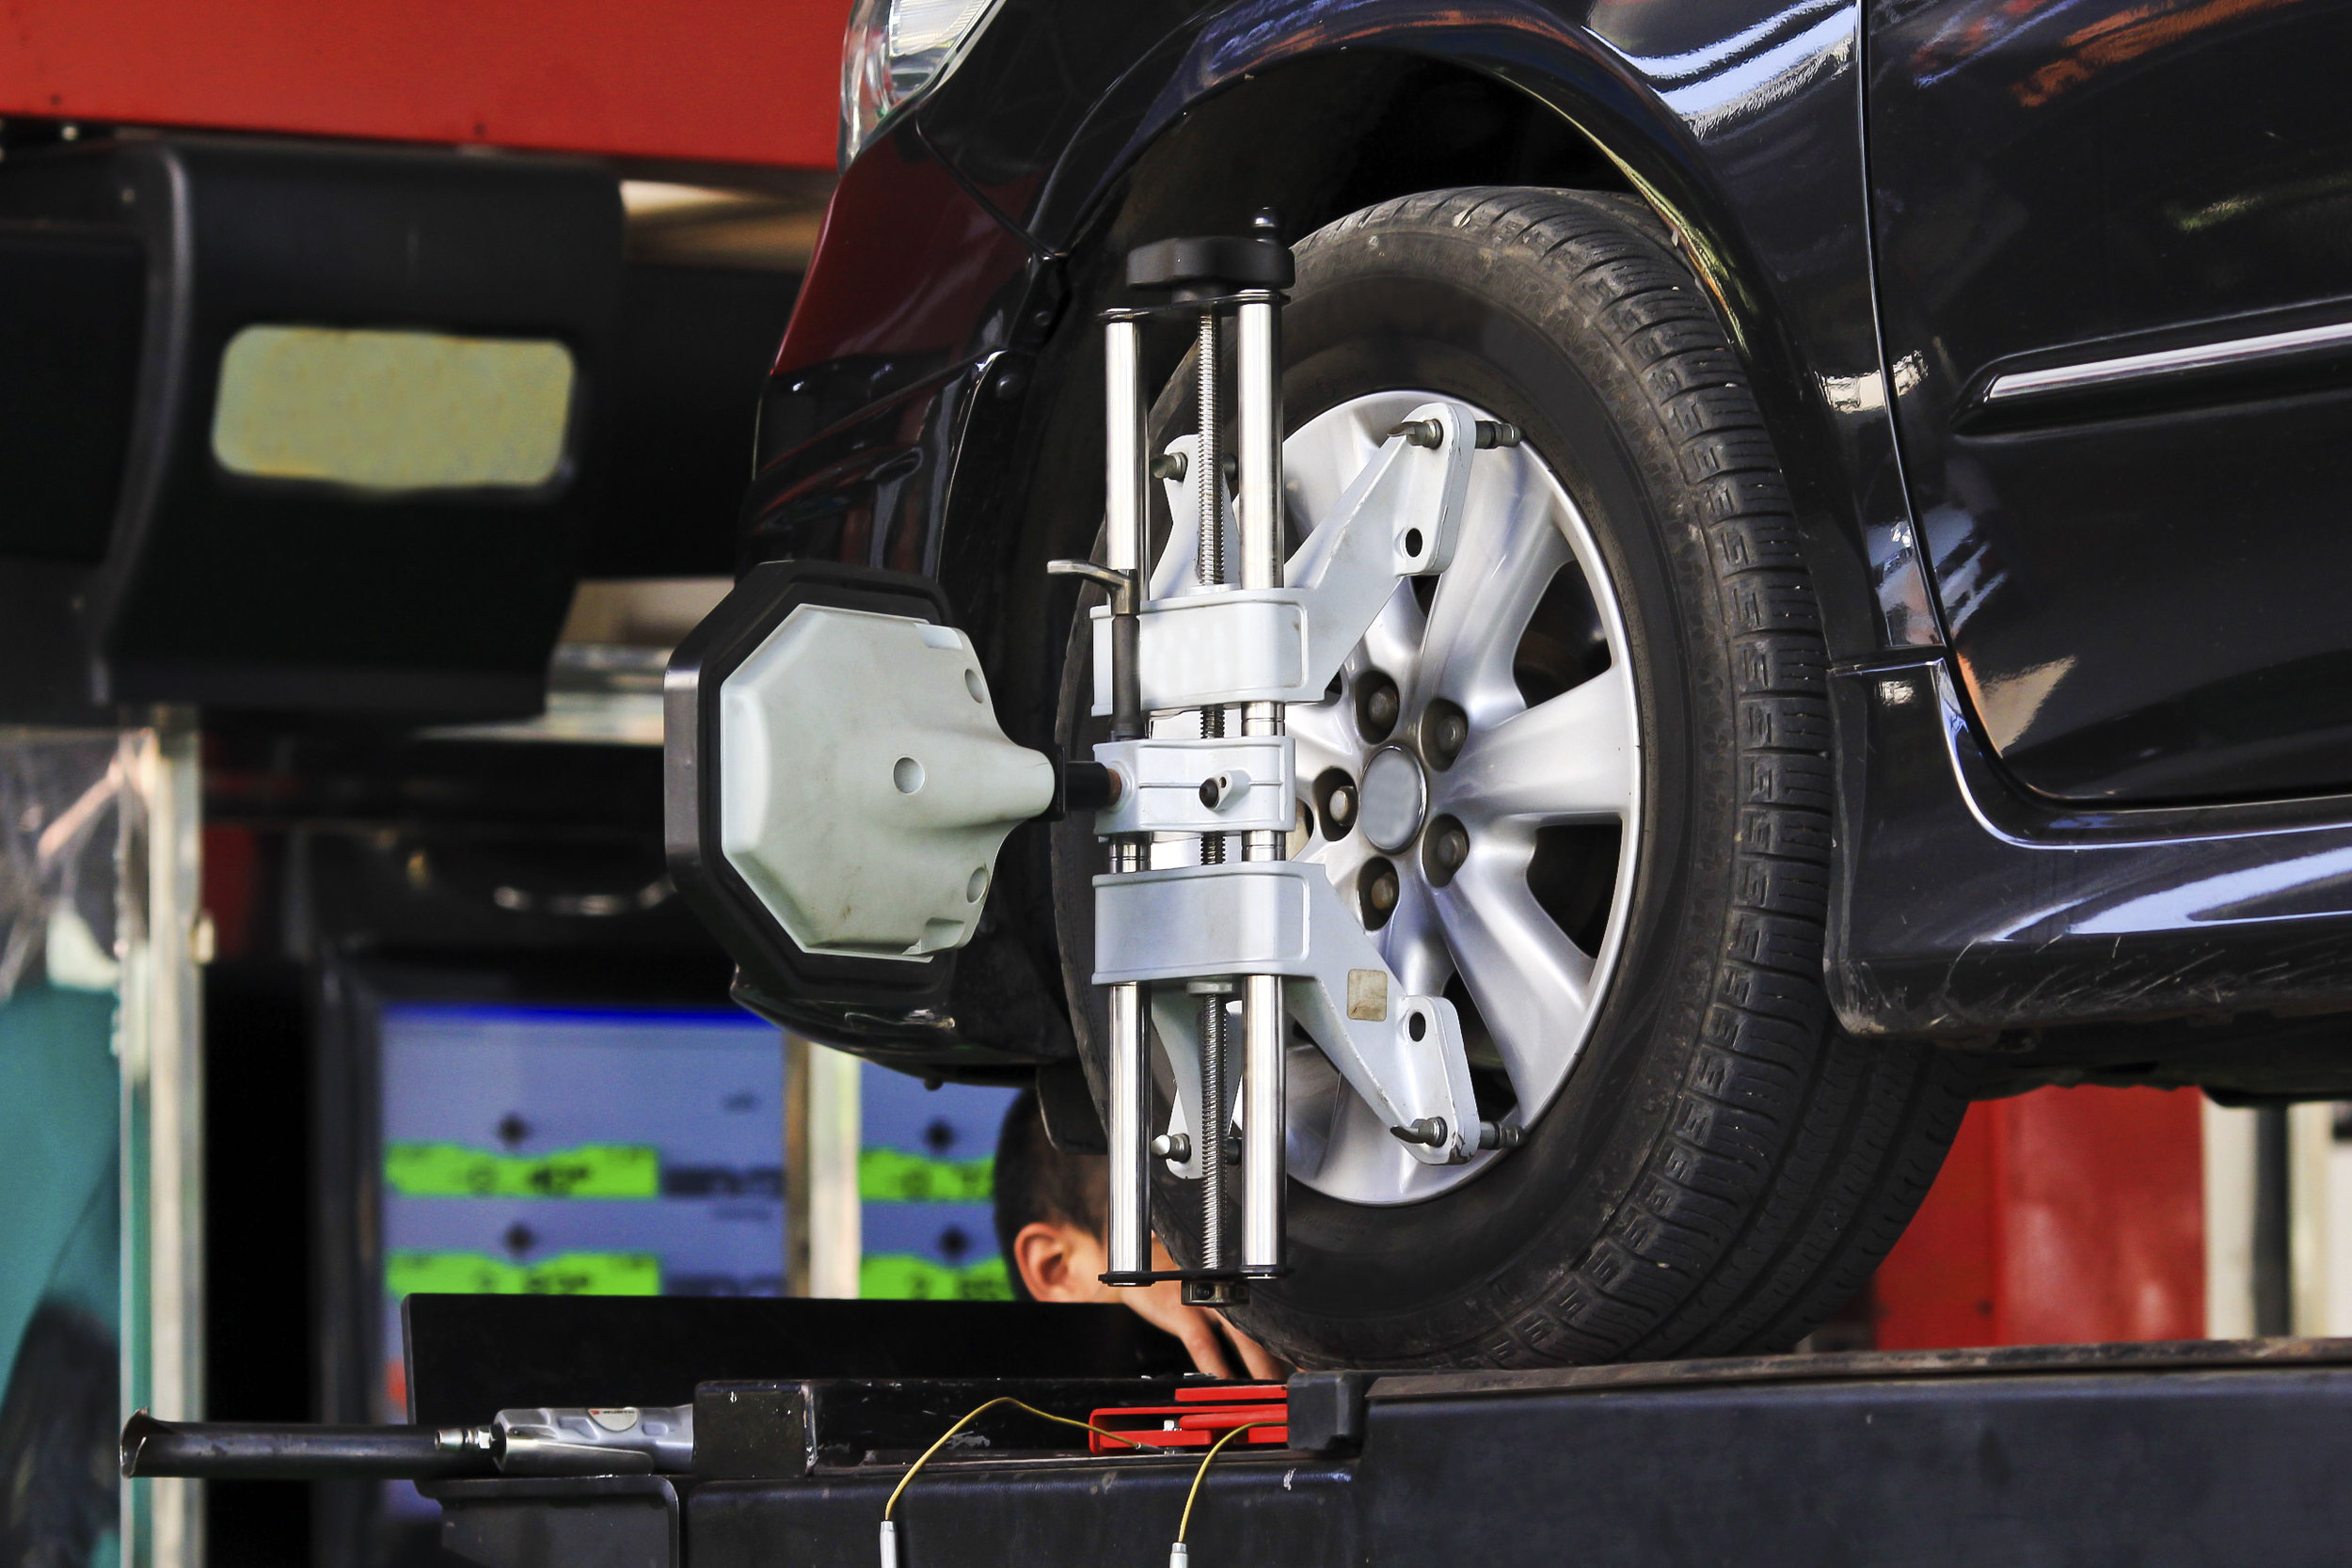 Alignment - Your vehicle has several components that fatigue over time or are disturbed by potholes and other bumps on the road. When these components slightly shift, it will affect the alignment angles of your vehicle which can wear out your tires prematurely or cause your vehicle to pull. A sign that an alignment is most likely needed is when the steering wheel is off center when driving straight.  Contact us  and we would be more than happy to ensure that your vehicle is driving straight down the road and not prematurely wearing your tires.